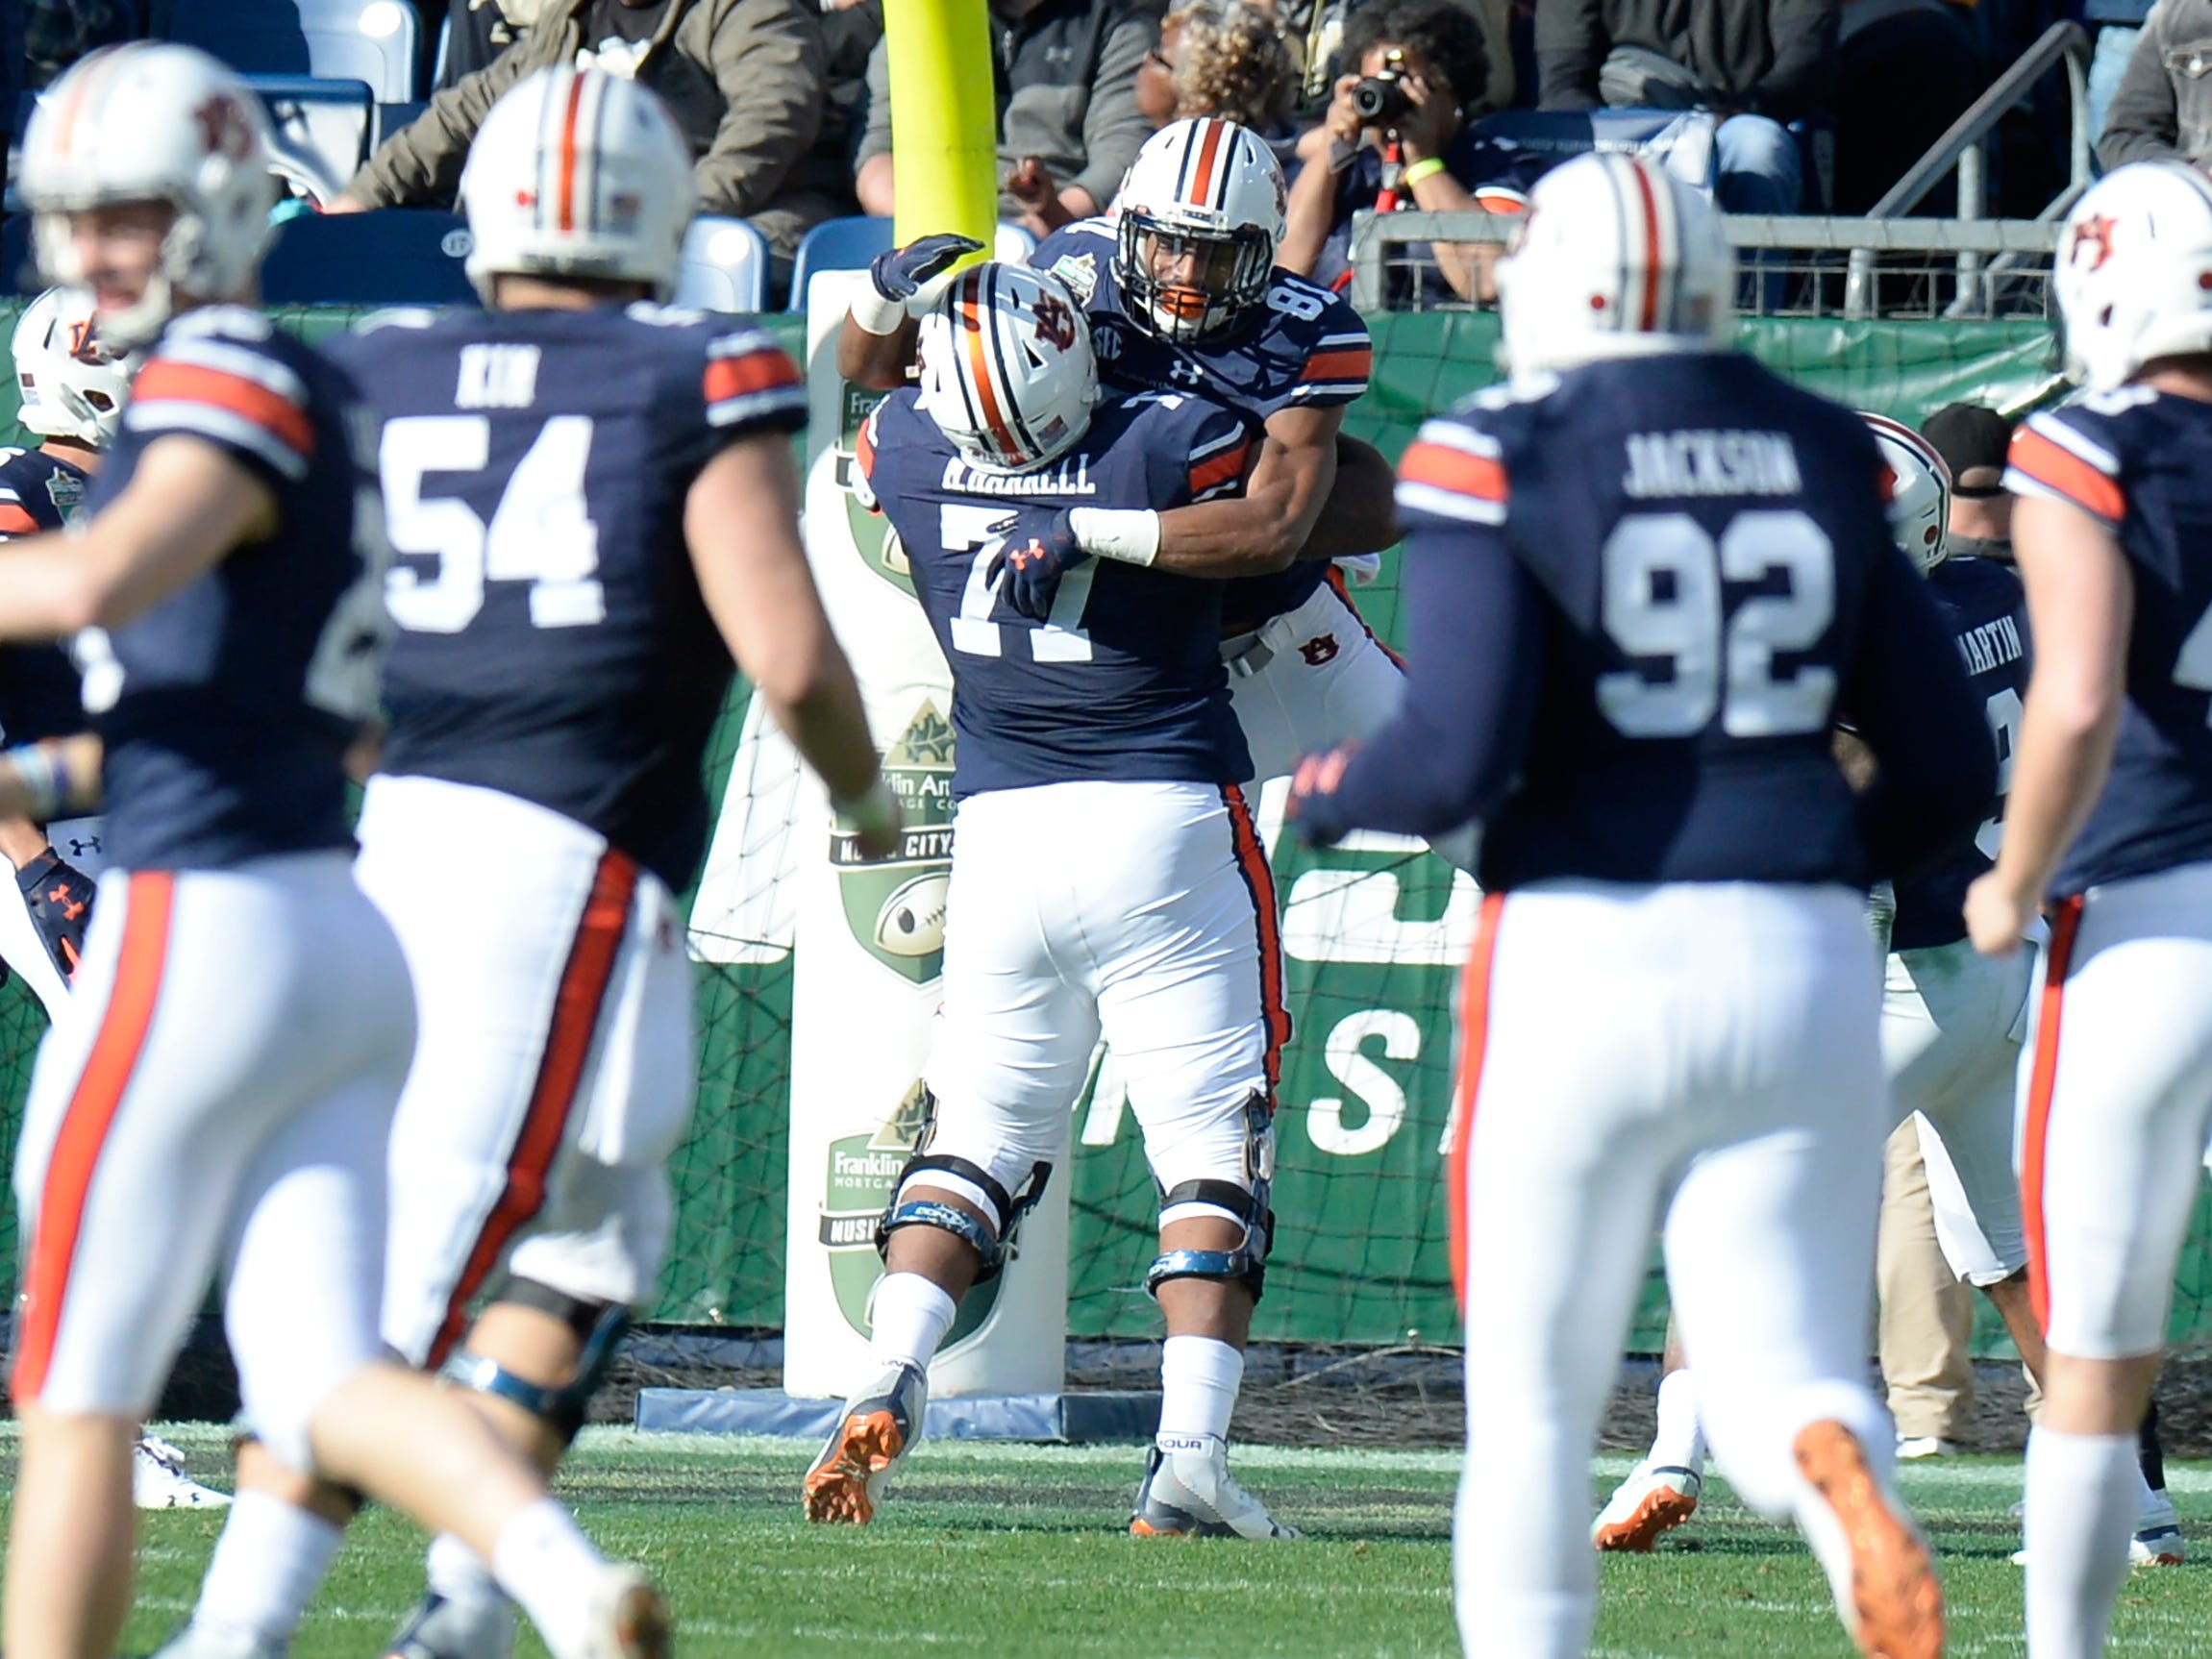 Auburn wide receiver Darius Slayton (81) celebrates his first touchdown with offensive lineman Marquel Harrell (77) in the first quarter of the Music City Bowl NCAA college football game Friday, Dec. 28, 2018, at Nissan Stadium in Nashville, Tenn.